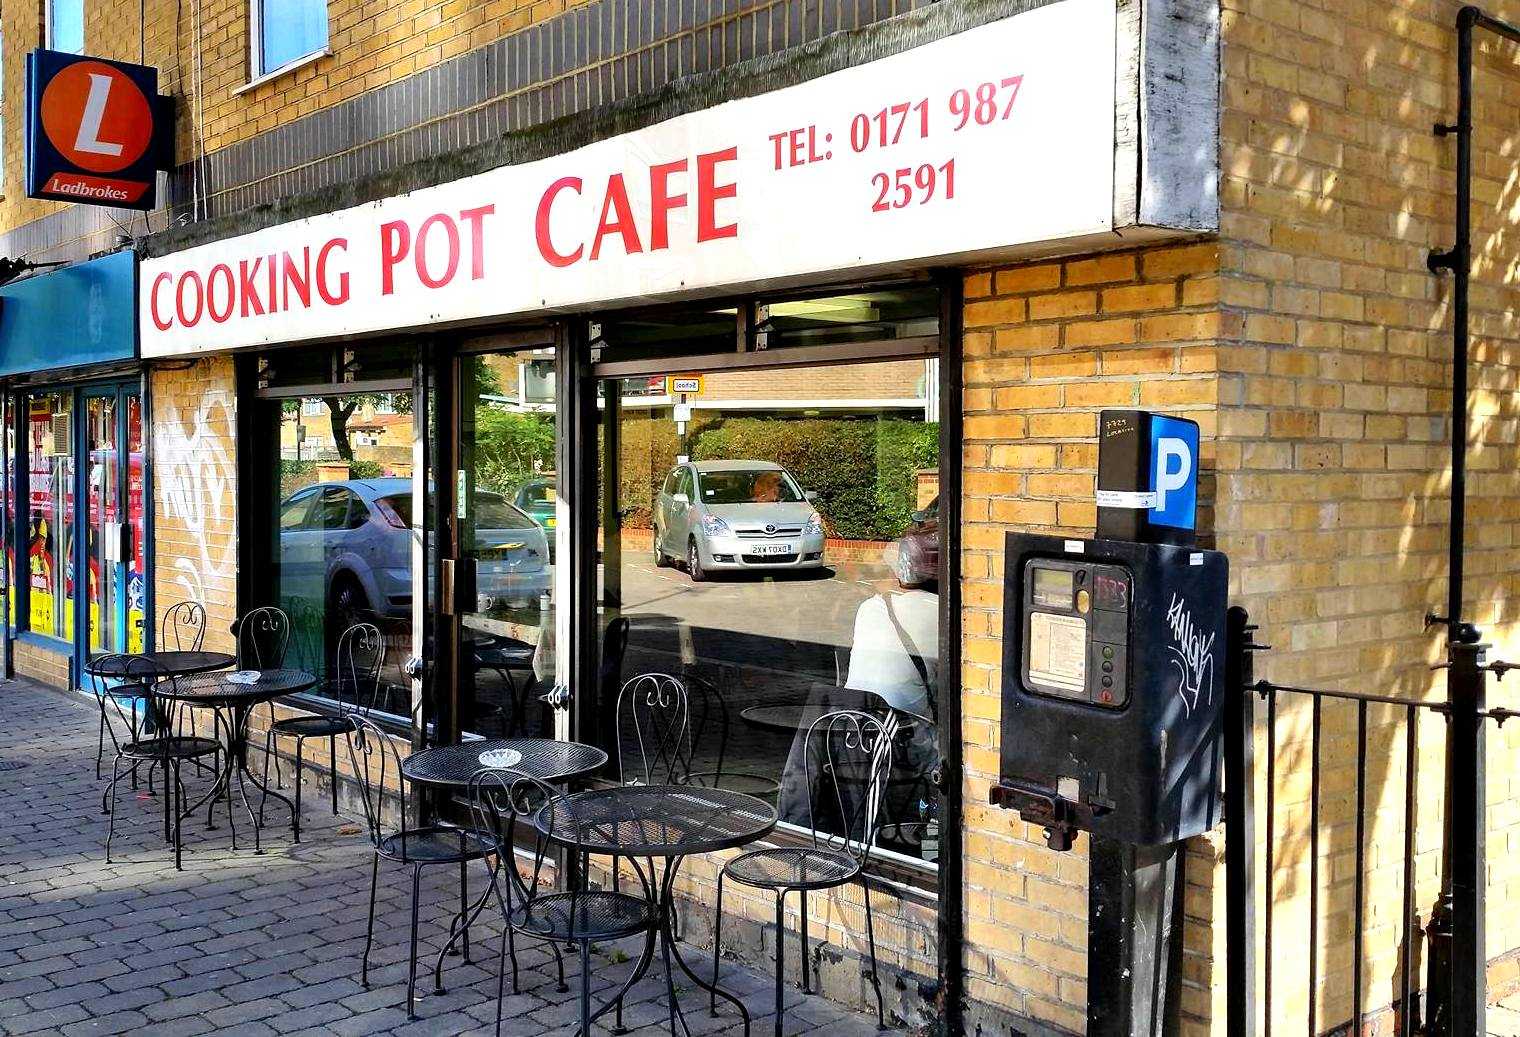 Cooking Pot Cafe